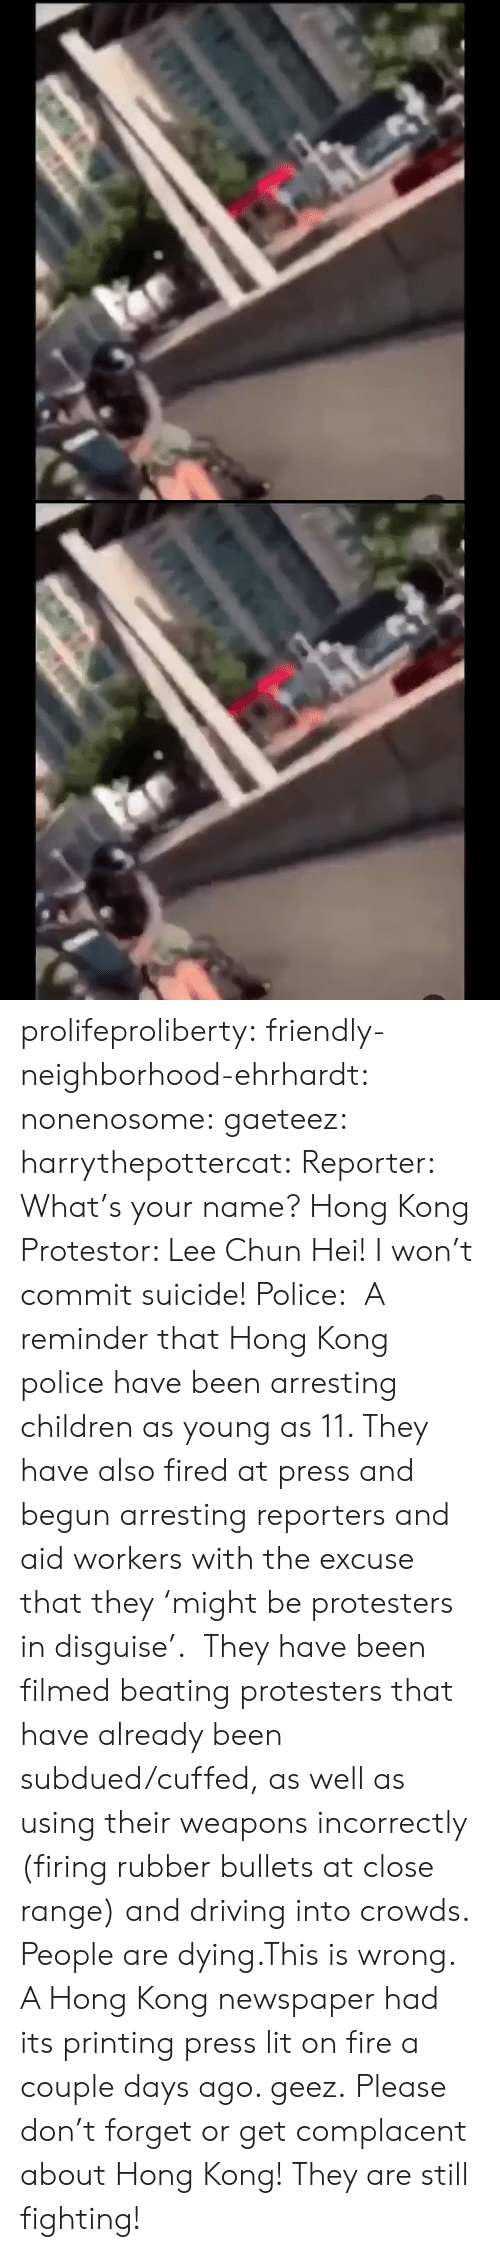 I Won: के.  ॥ल prolifeproliberty:  friendly-neighborhood-ehrhardt:  nonenosome:  gaeteez:   harrythepottercat:  Reporter: What's your name? Hong Kong Protestor: Lee Chun Hei! I won't commit suicide! Police:    A reminder that Hong Kong police have been arresting children as young as 11. They have also fired at press and begun arresting reporters and aid workers with the excuse that they 'might be protesters in disguise'.  They have been filmed beating protesters that have already been subdued/cuffed, as well as using their weapons incorrectly (firing rubber bullets at close range) and driving into crowds.  People are dying.This is wrong.    A Hong Kong newspaper had its printing press lit on fire a couple days ago.   geez.   Please don't forget or get complacent about Hong Kong! They are still fighting!